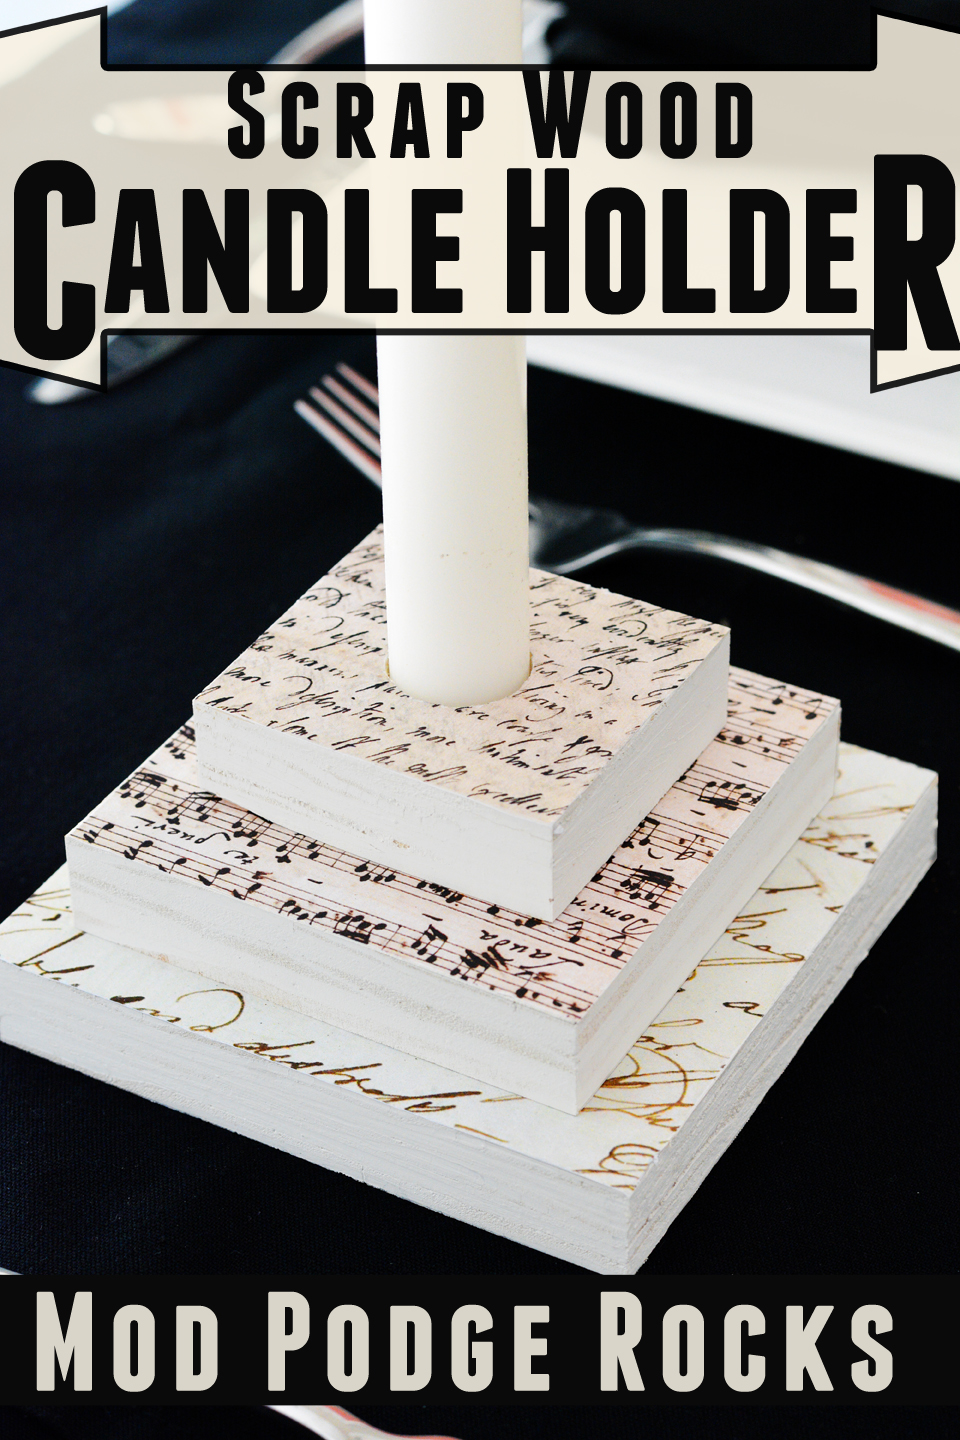 What to do with pieces of scrap wood? Turn them into home decor! These scrap wood candle holders are easy to make and have a lot of possibilities.